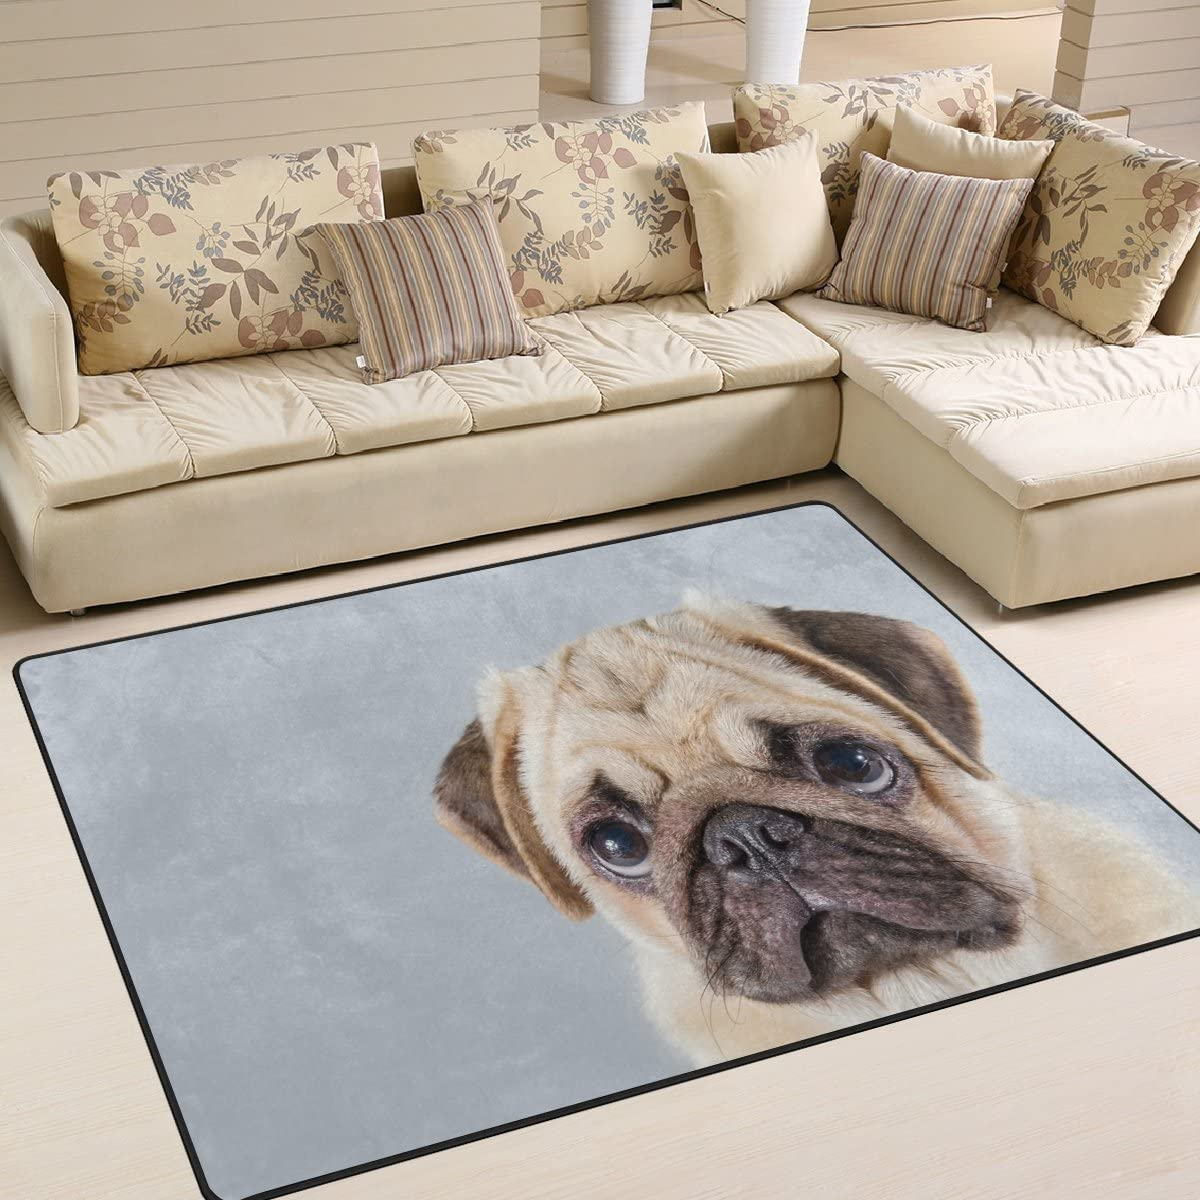 ALAZA Cute Pug Puppy Dog Area Rug Rugs for Living Room Bedroom 7 x 5